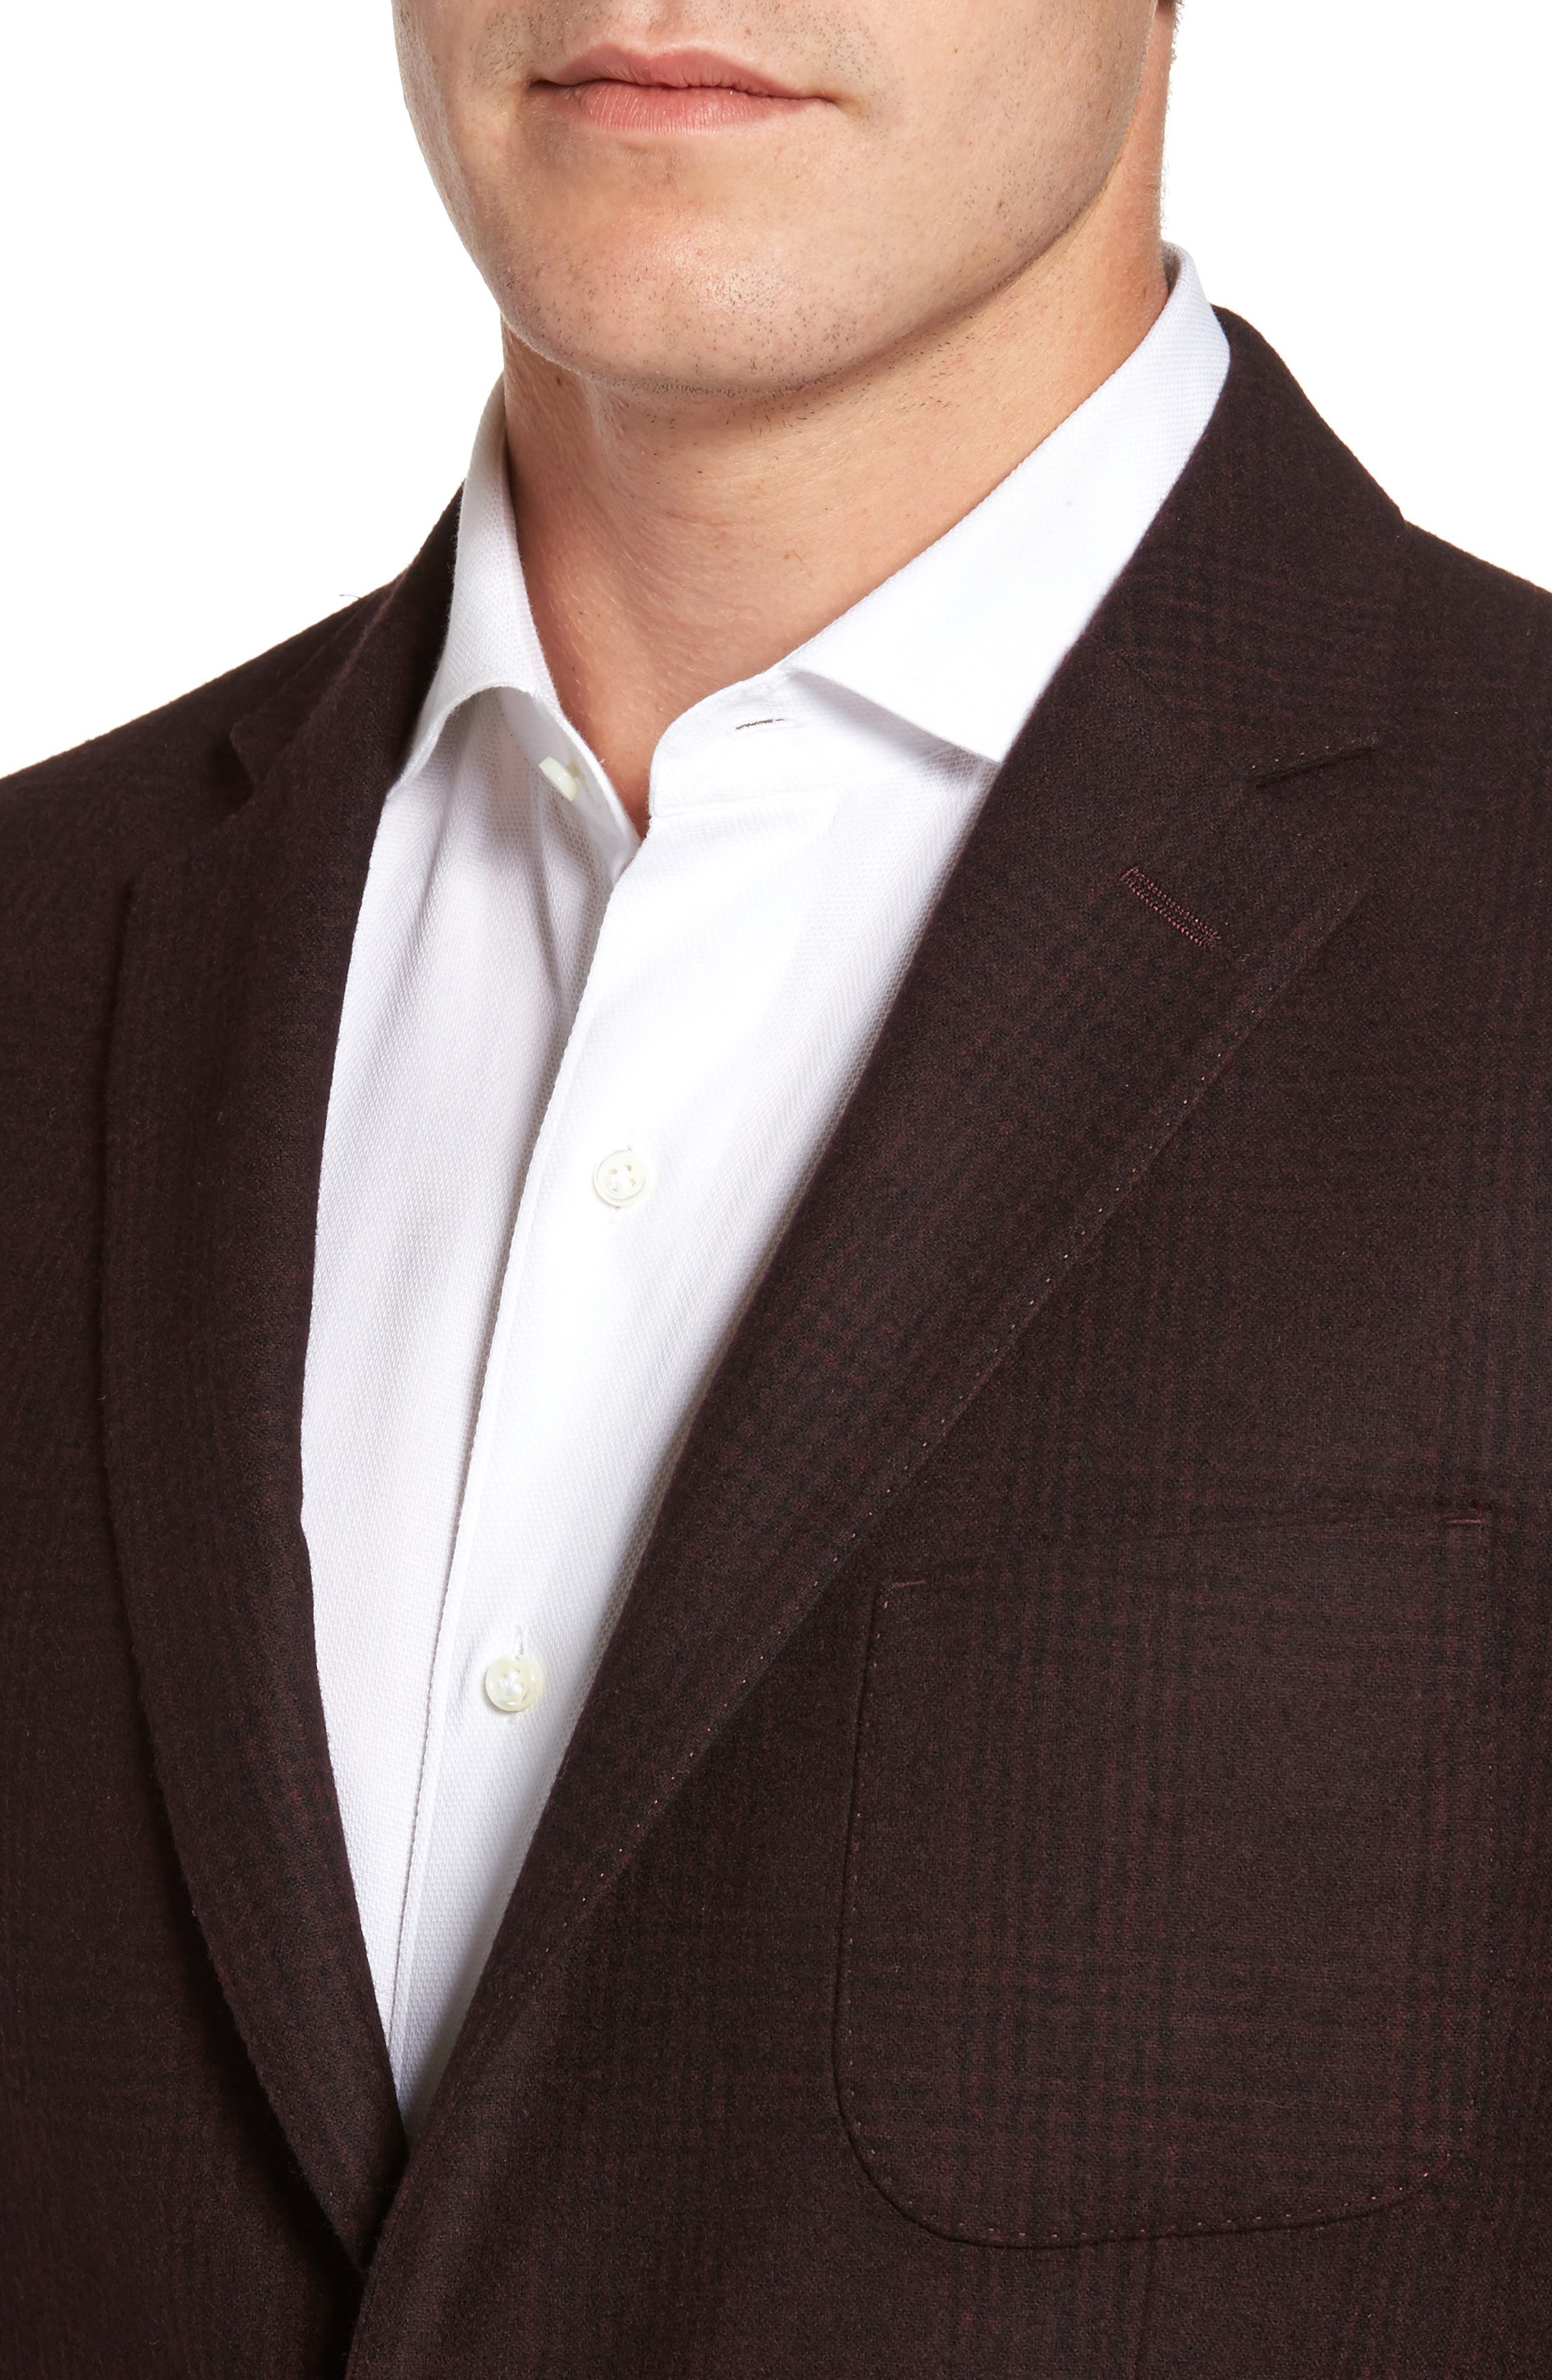 Classic Fit Plaid Merino Wool Jersey Sport Coat,                             Alternate thumbnail 4, color,                             930